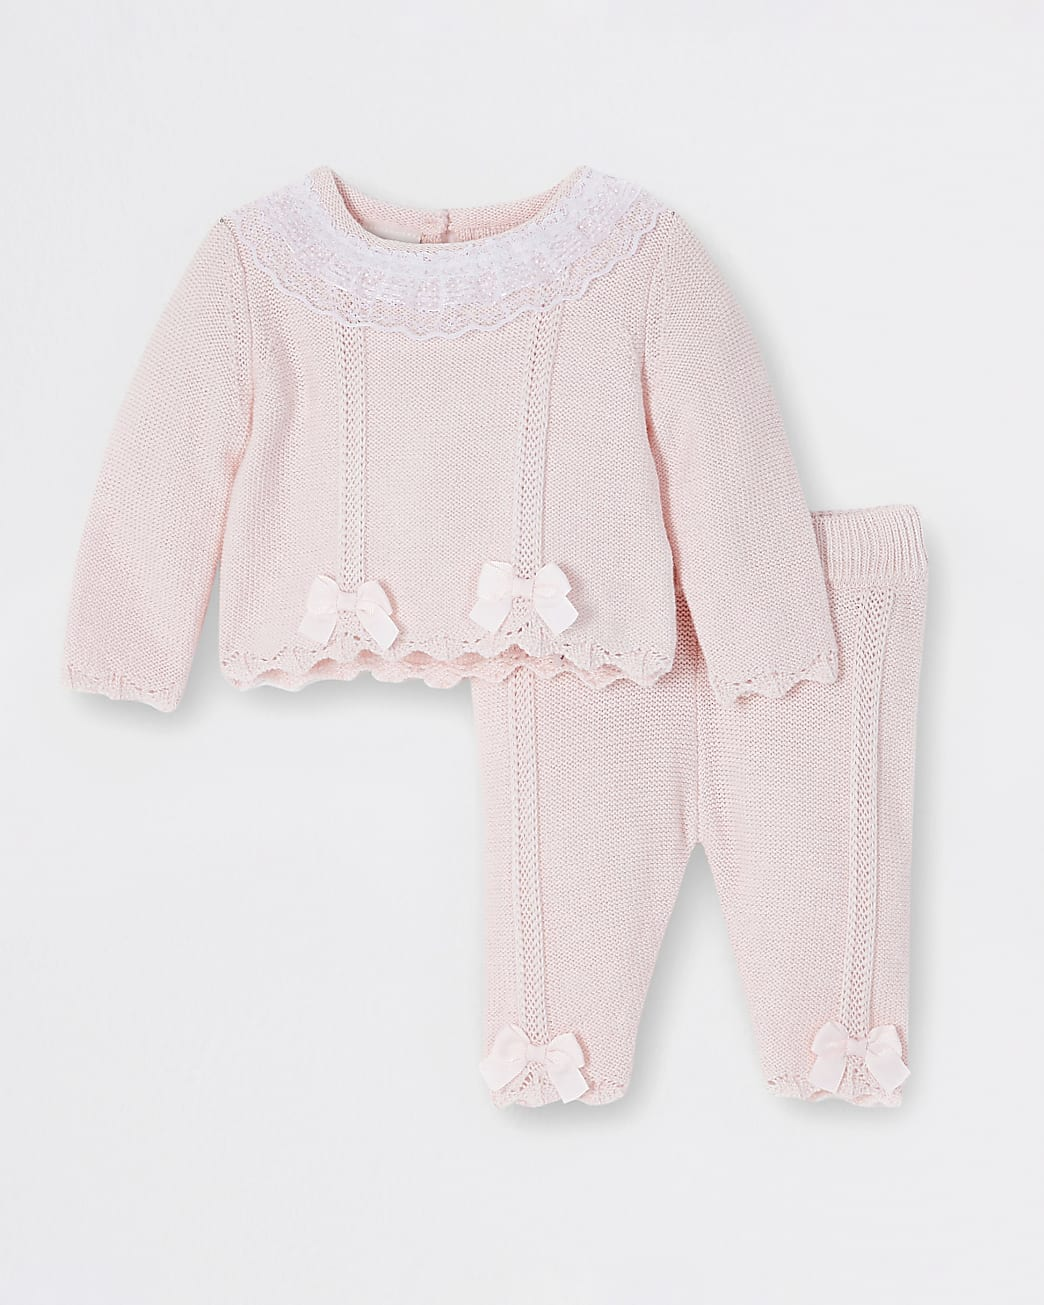 Baby girls pink lace frill neck jumper outfit